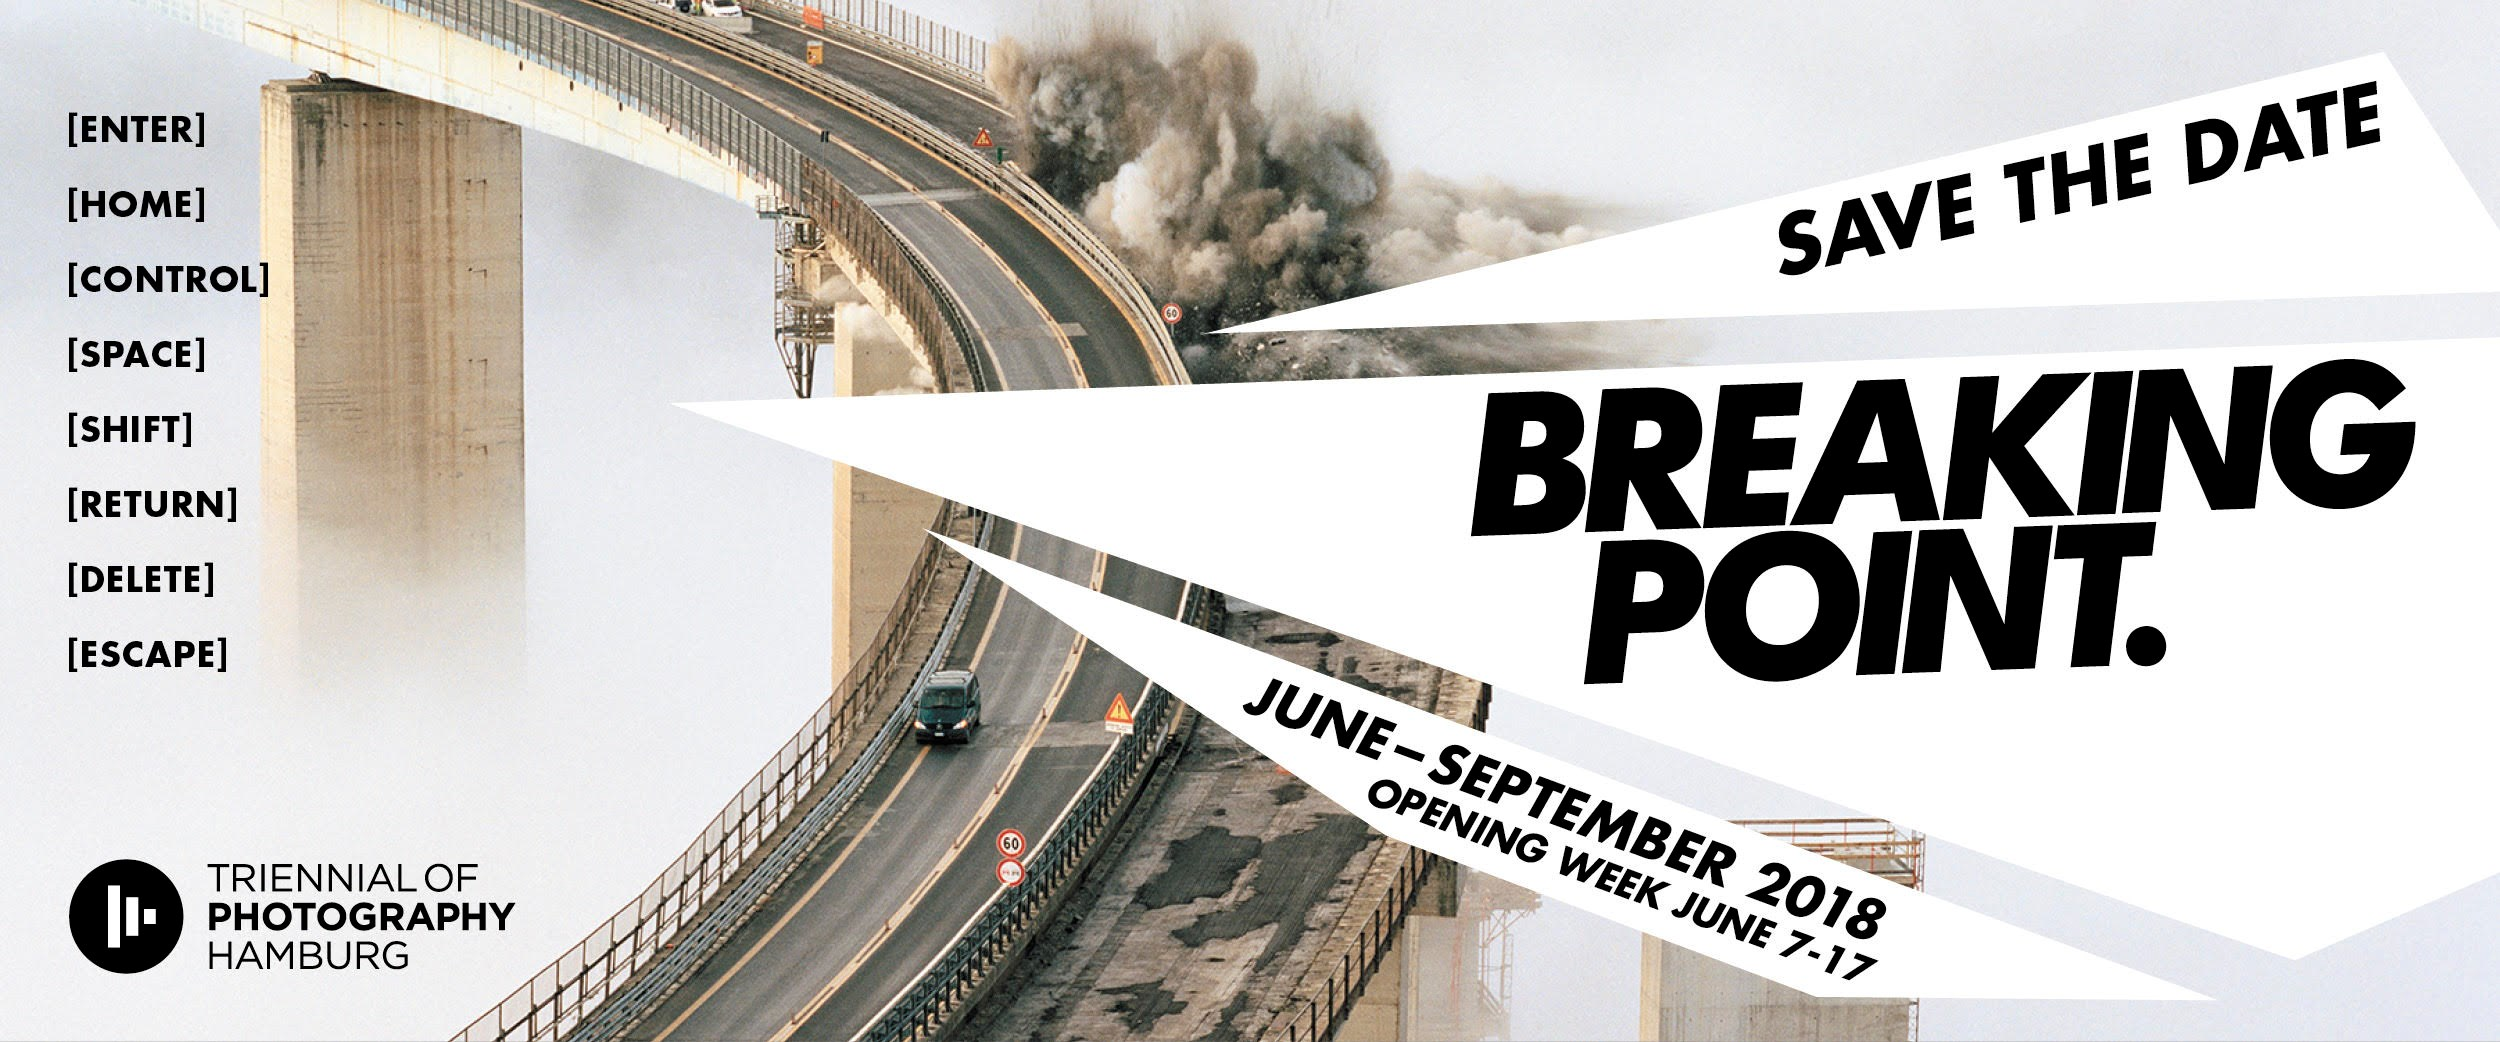 Breaking Point. Searching for Change: Triennale der Photographie Hamburg